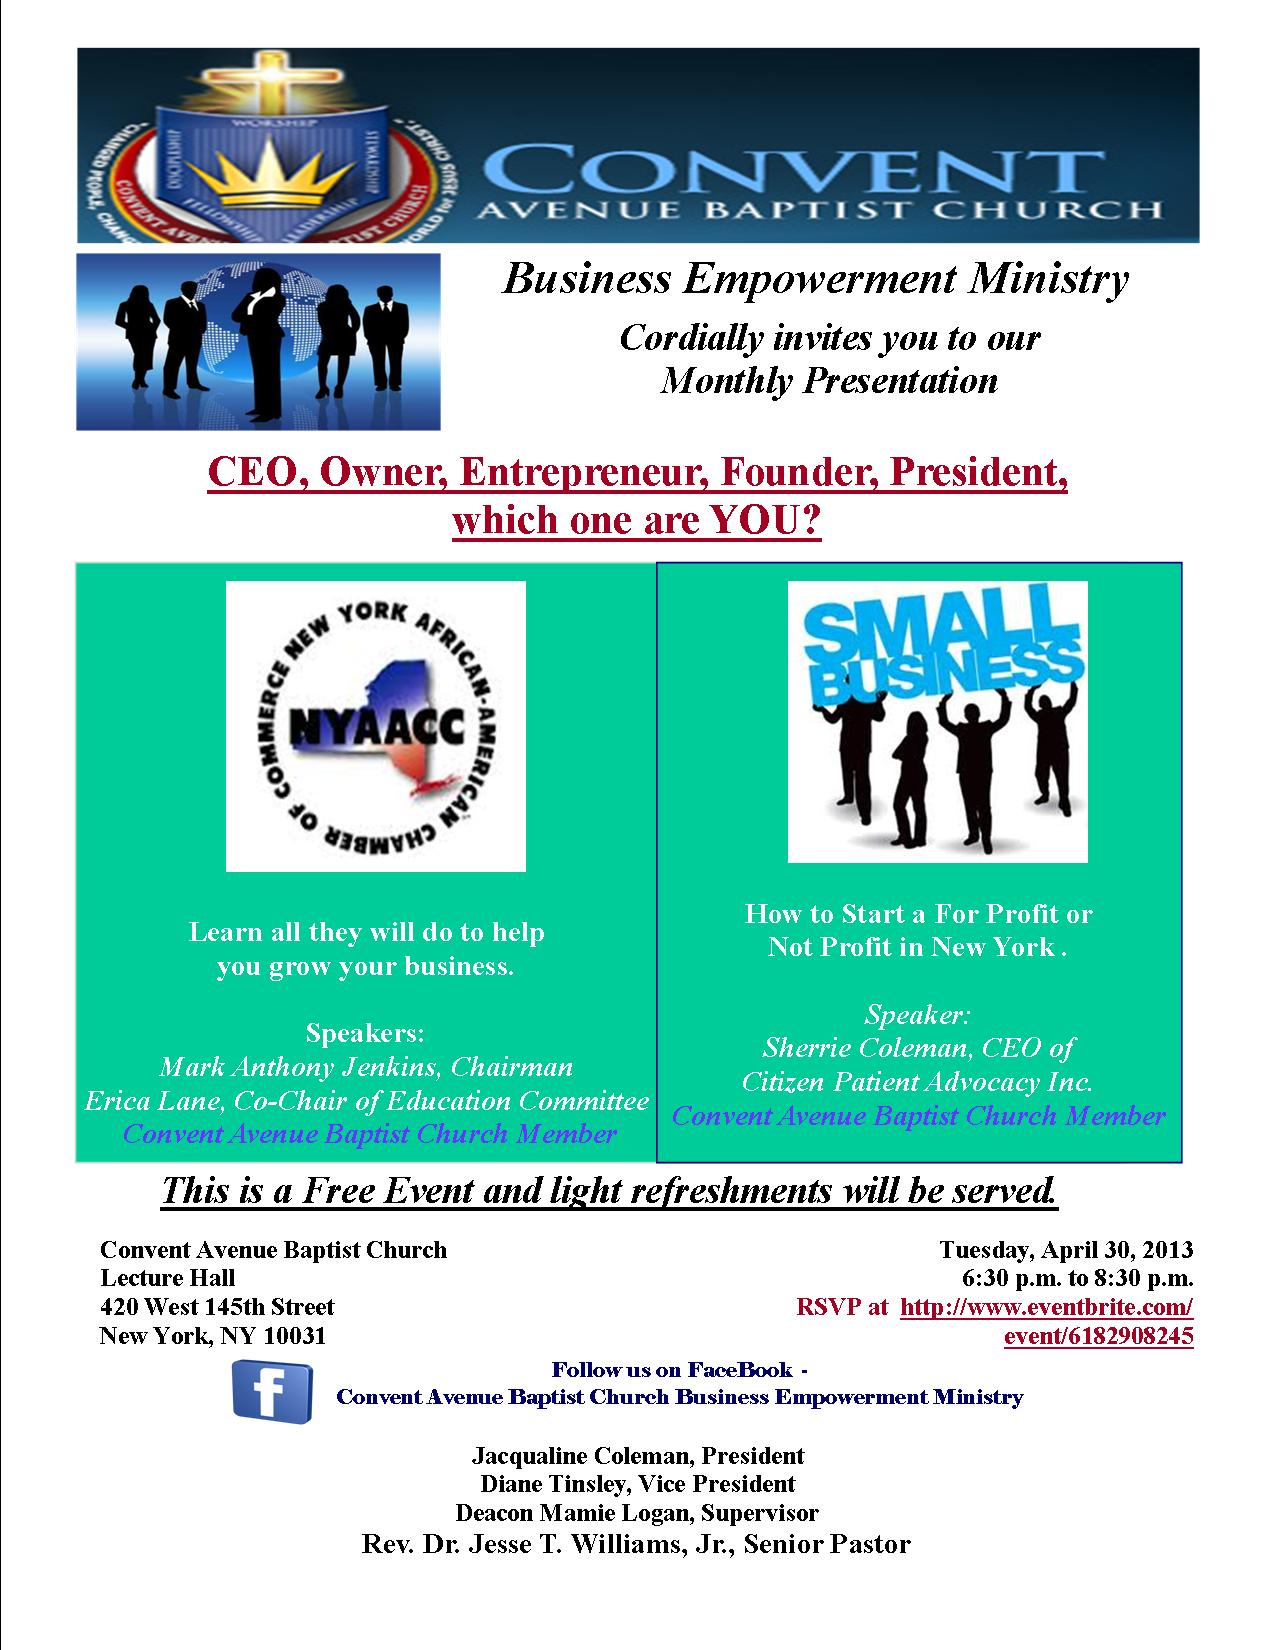 BEM Flyer - April 2013